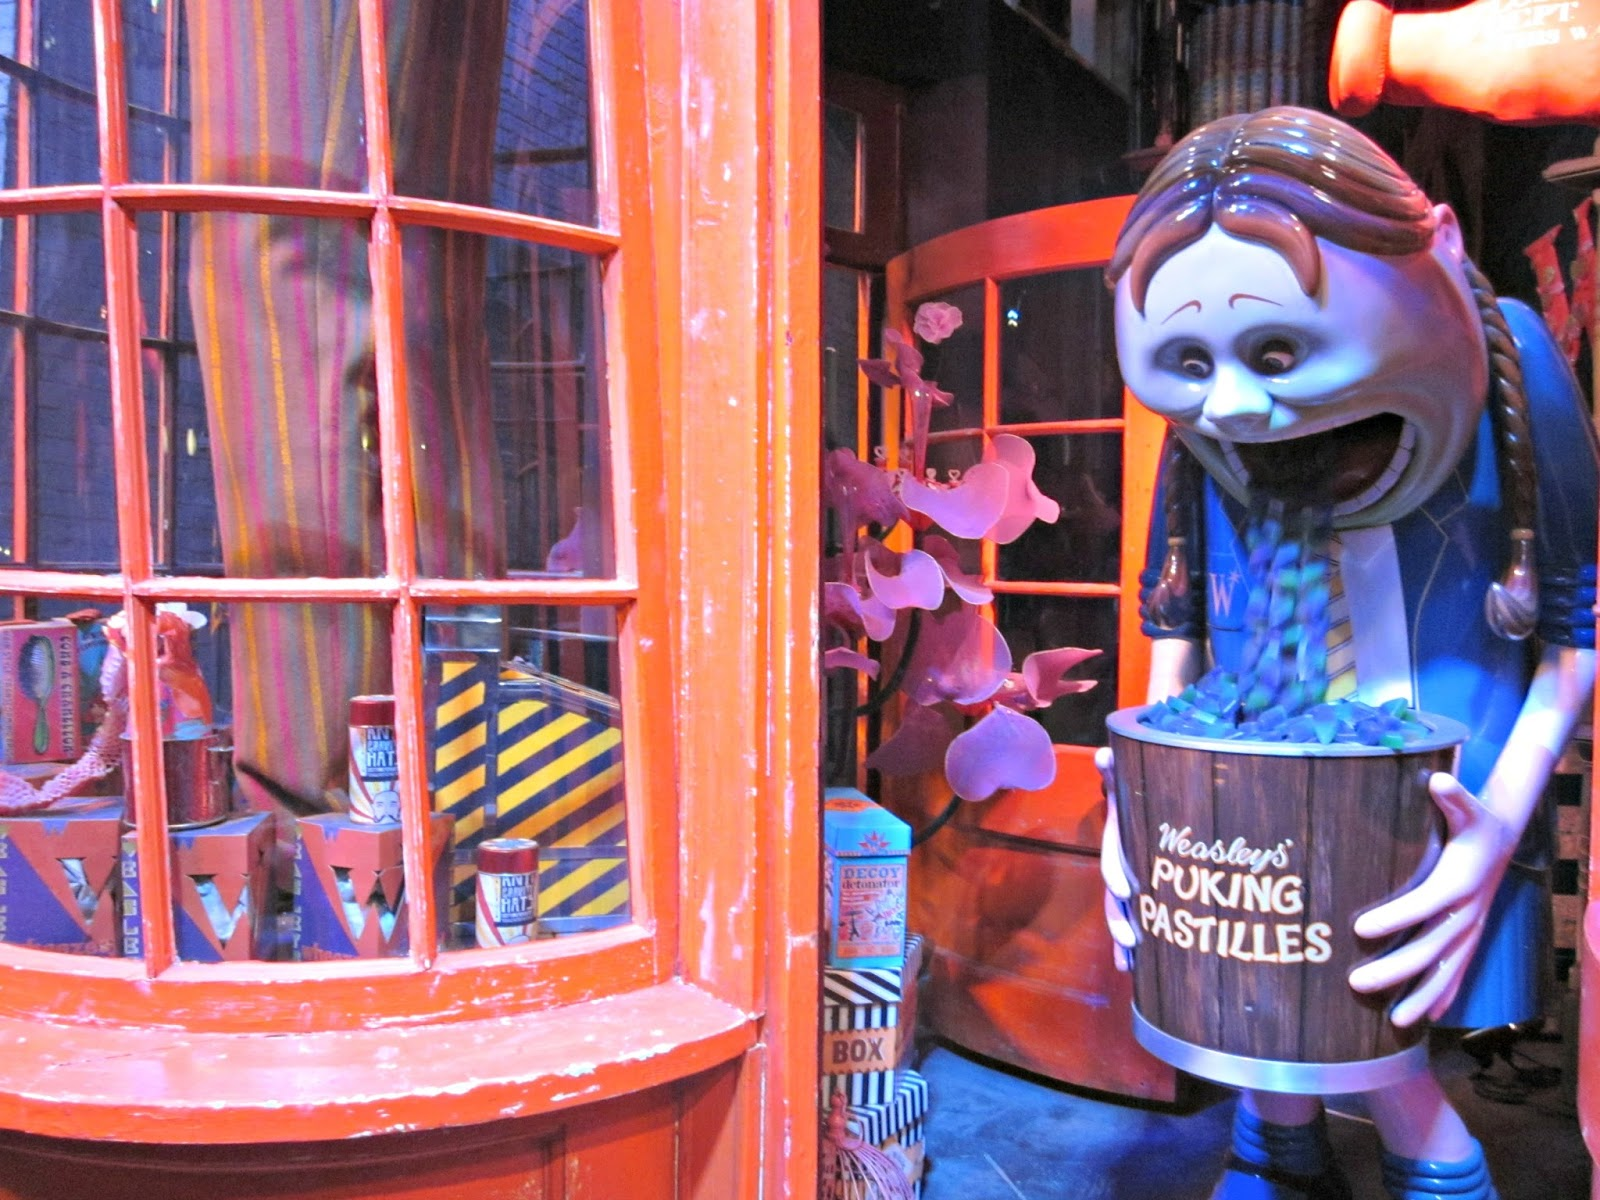 Weasley's Wizarding Wheezes at The Making Of Harry Potter Warner Brothers Studio Tour